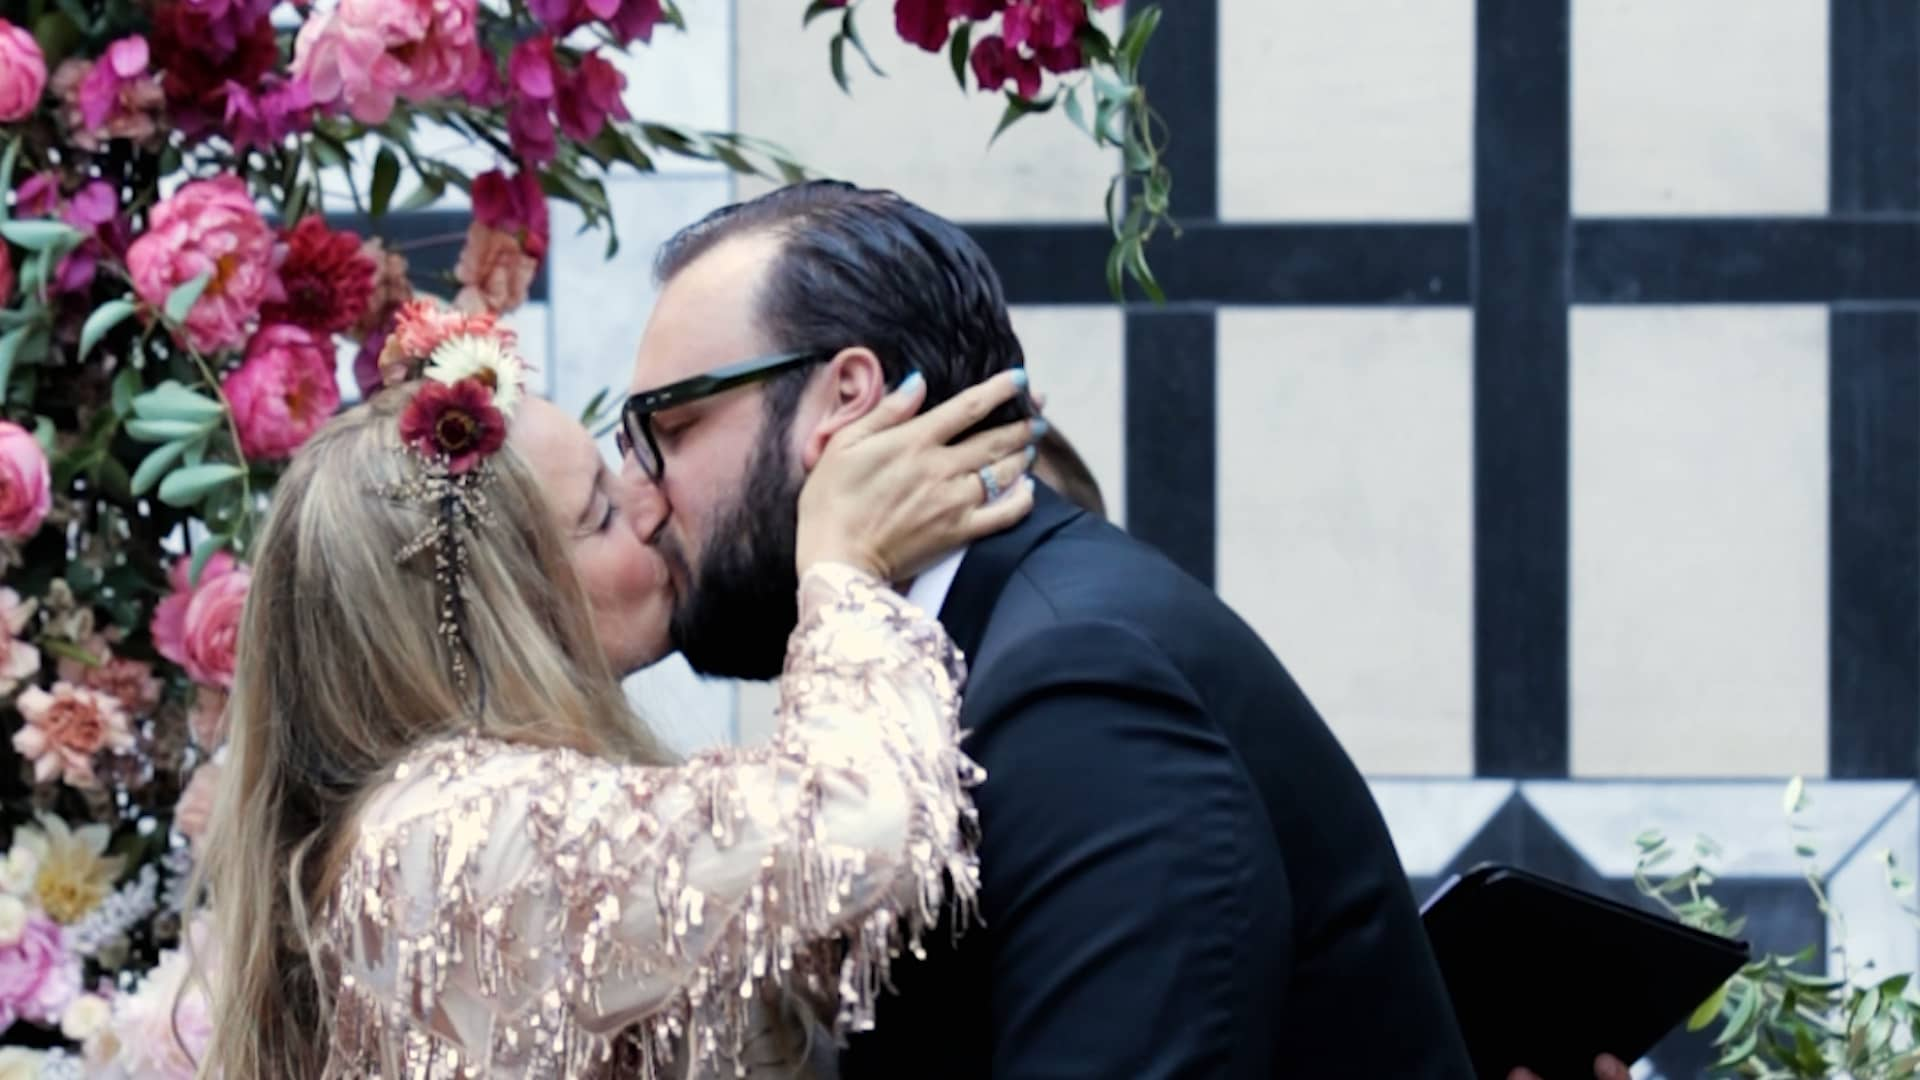 Kayla and Andrew share a kiss during their wedding ceremony.